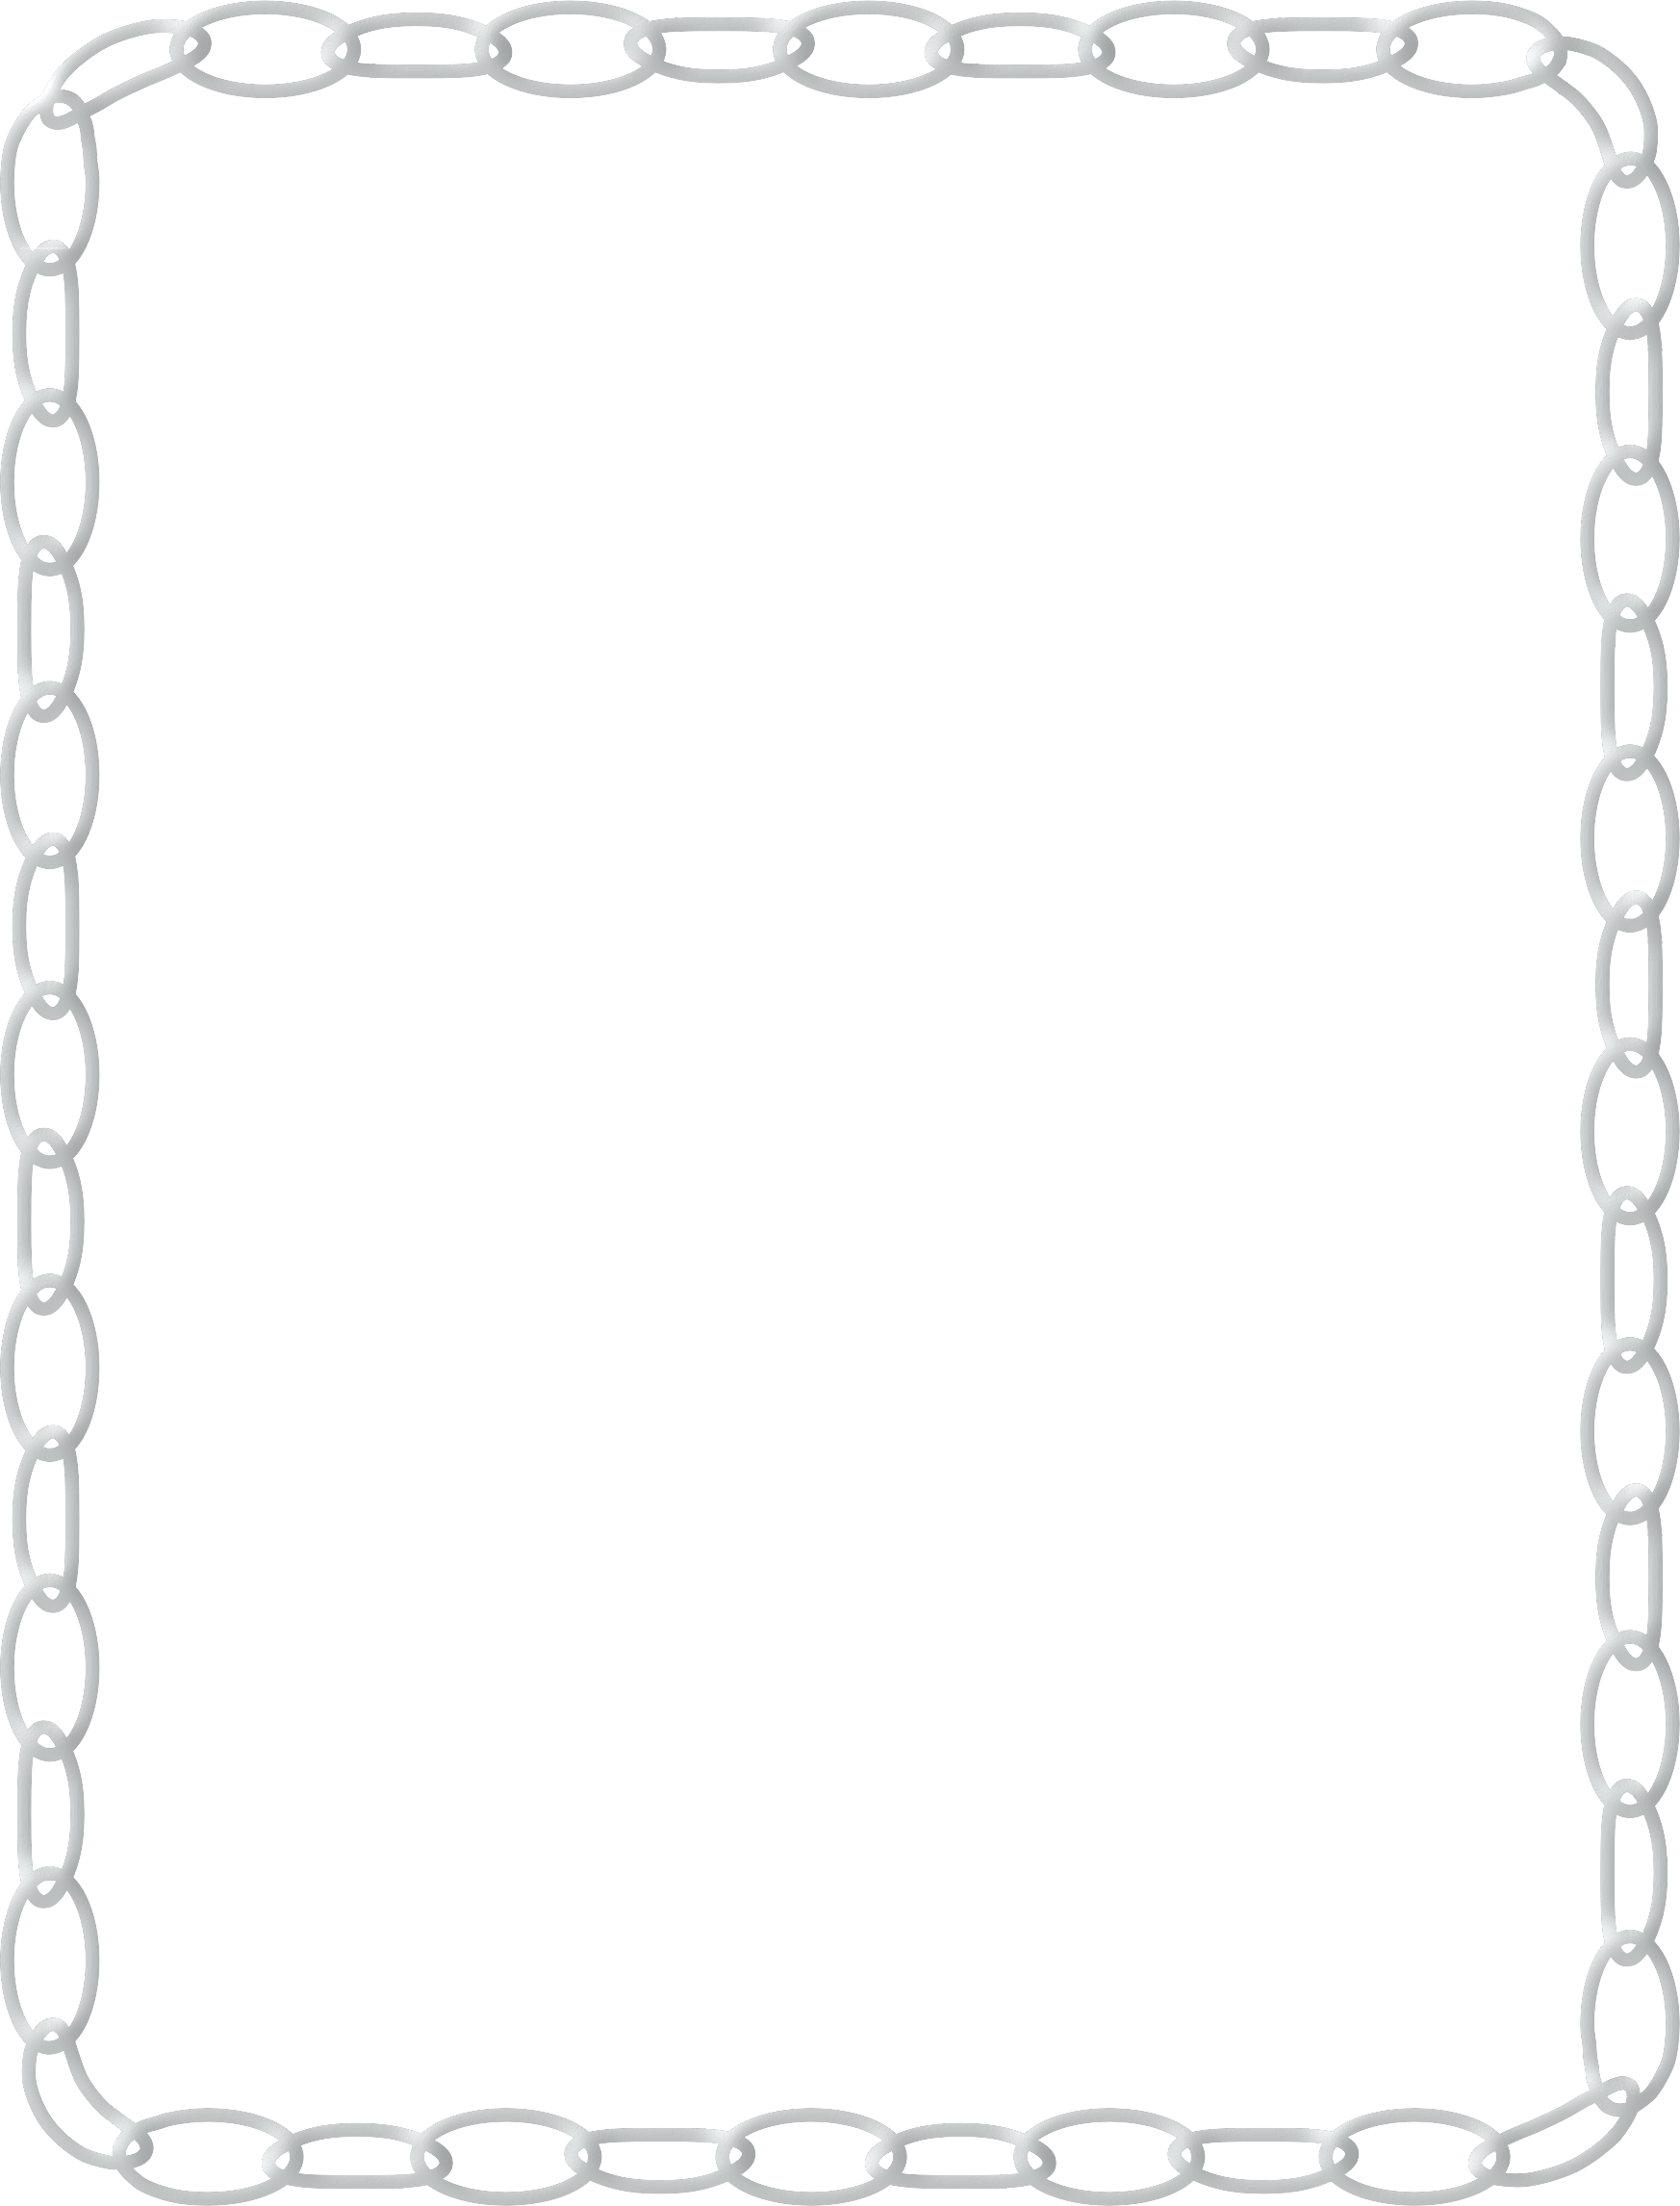 Chain Border by Arvin61r58